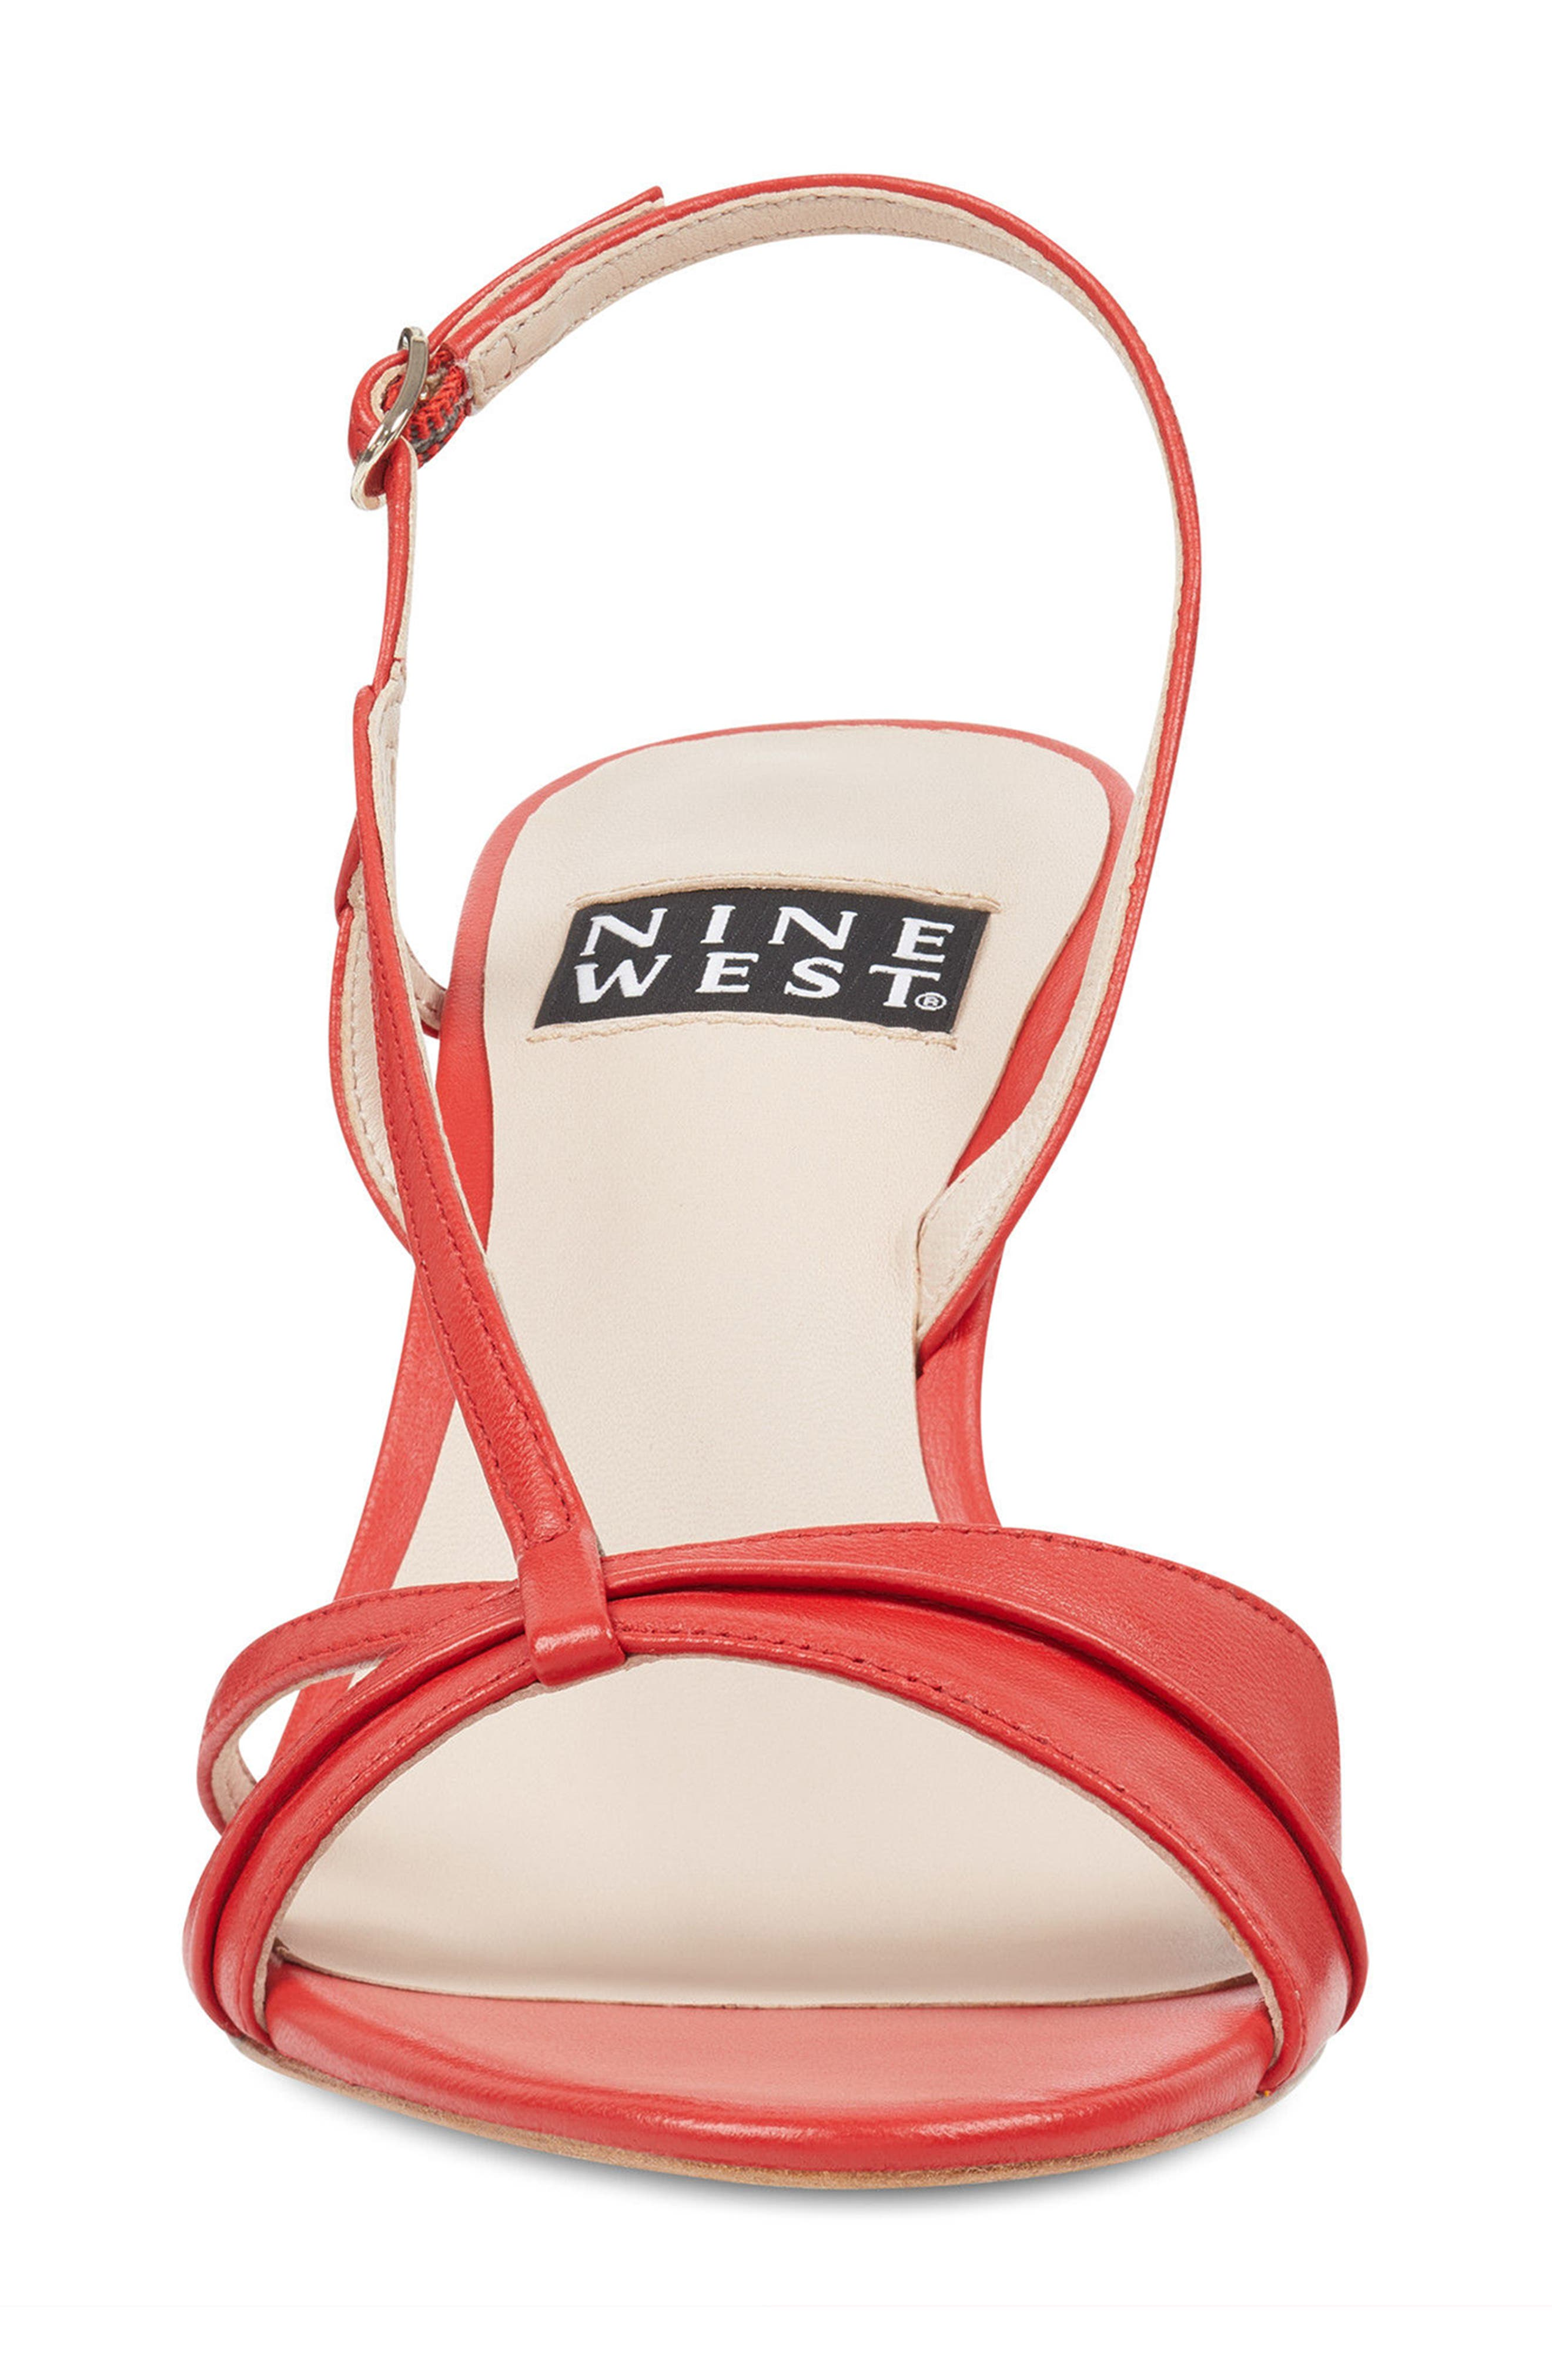 Accolia - 40th Anniversary Capsule Collection Sandal,                             Alternate thumbnail 4, color,                             Red Leather